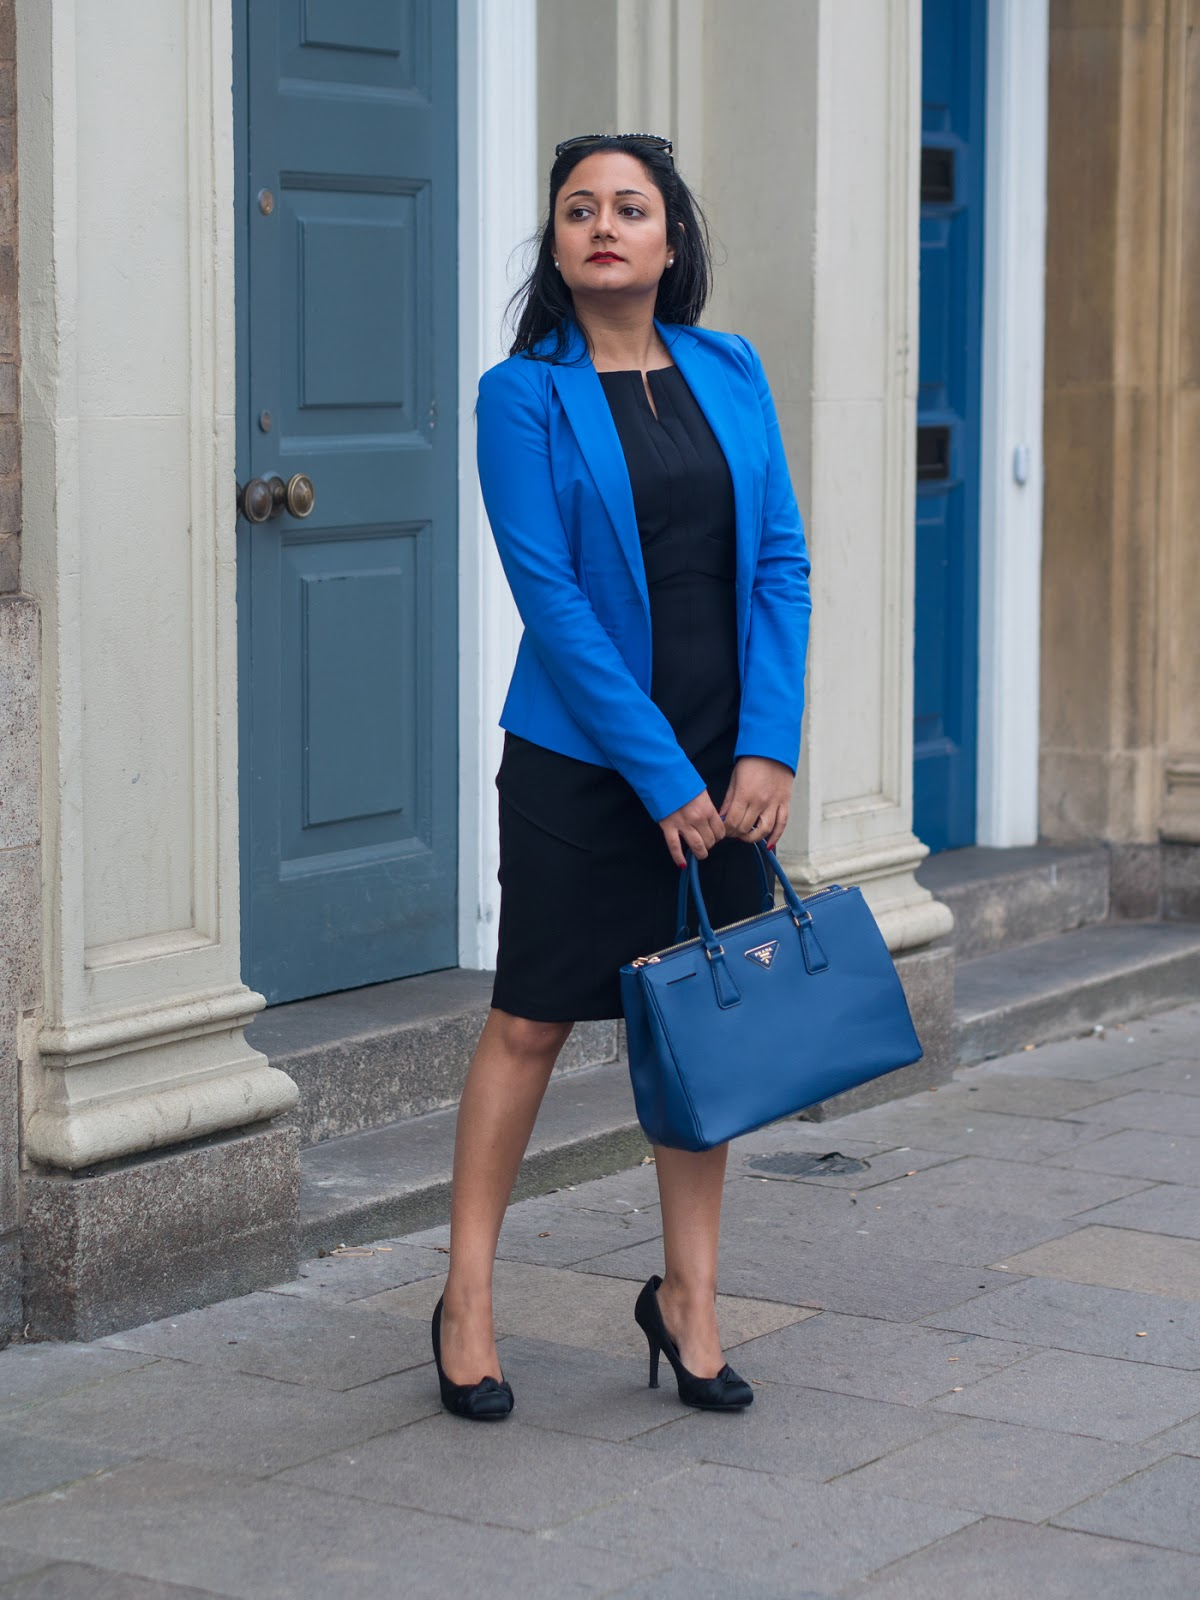 How to style a statement jacket